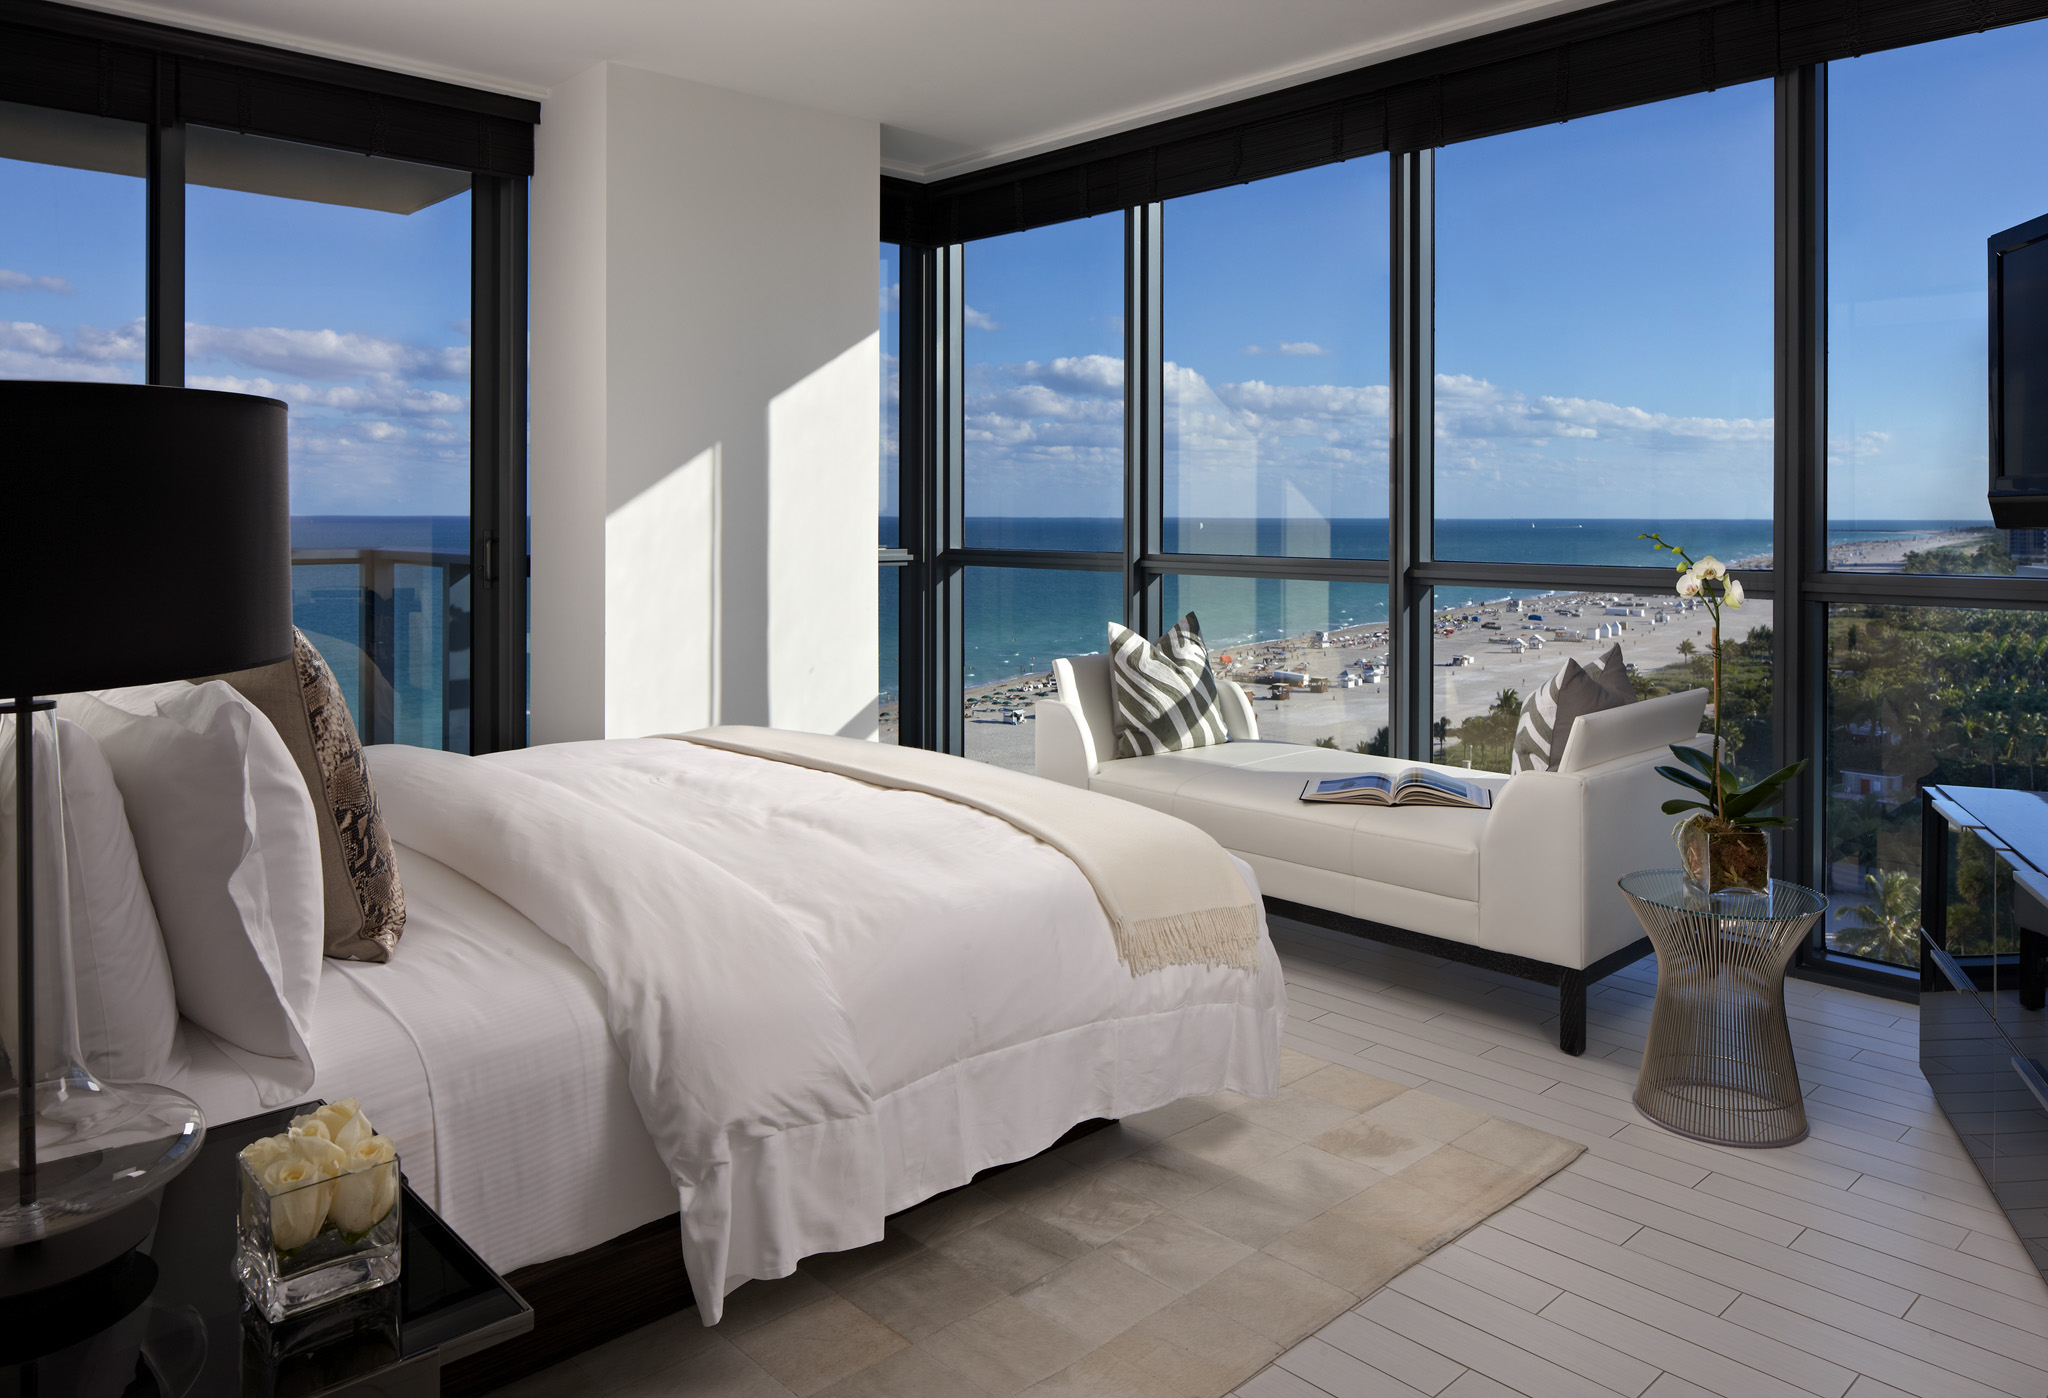 The w hotel south beach miami florida for W living room miami